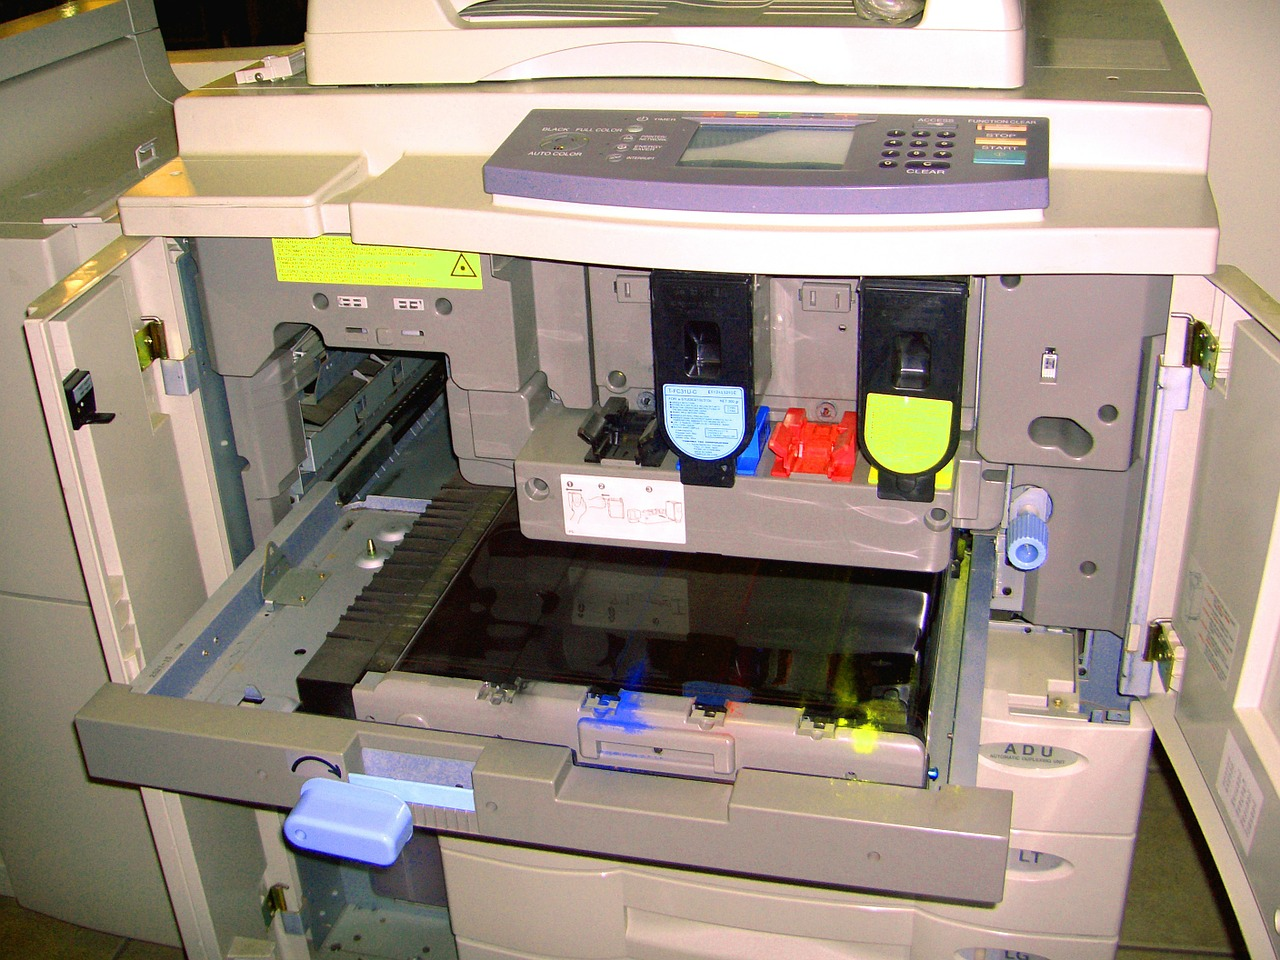 Business Printing Costs: What to Know and What You Can Do